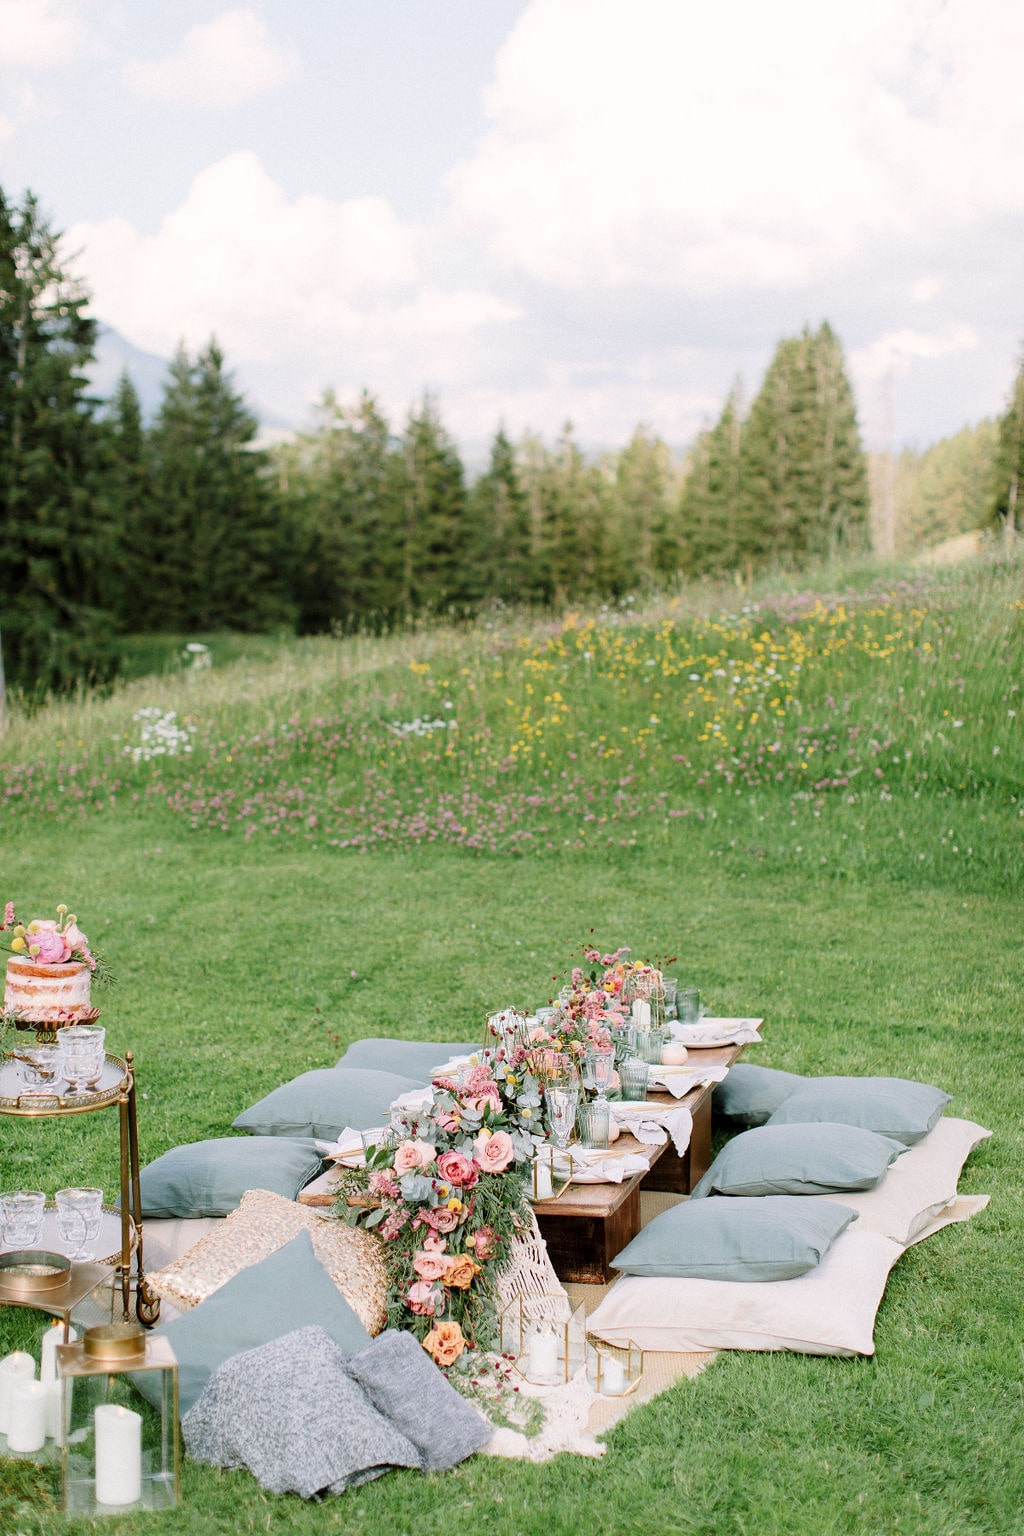 picnic time in gstaad after a wedding elopement